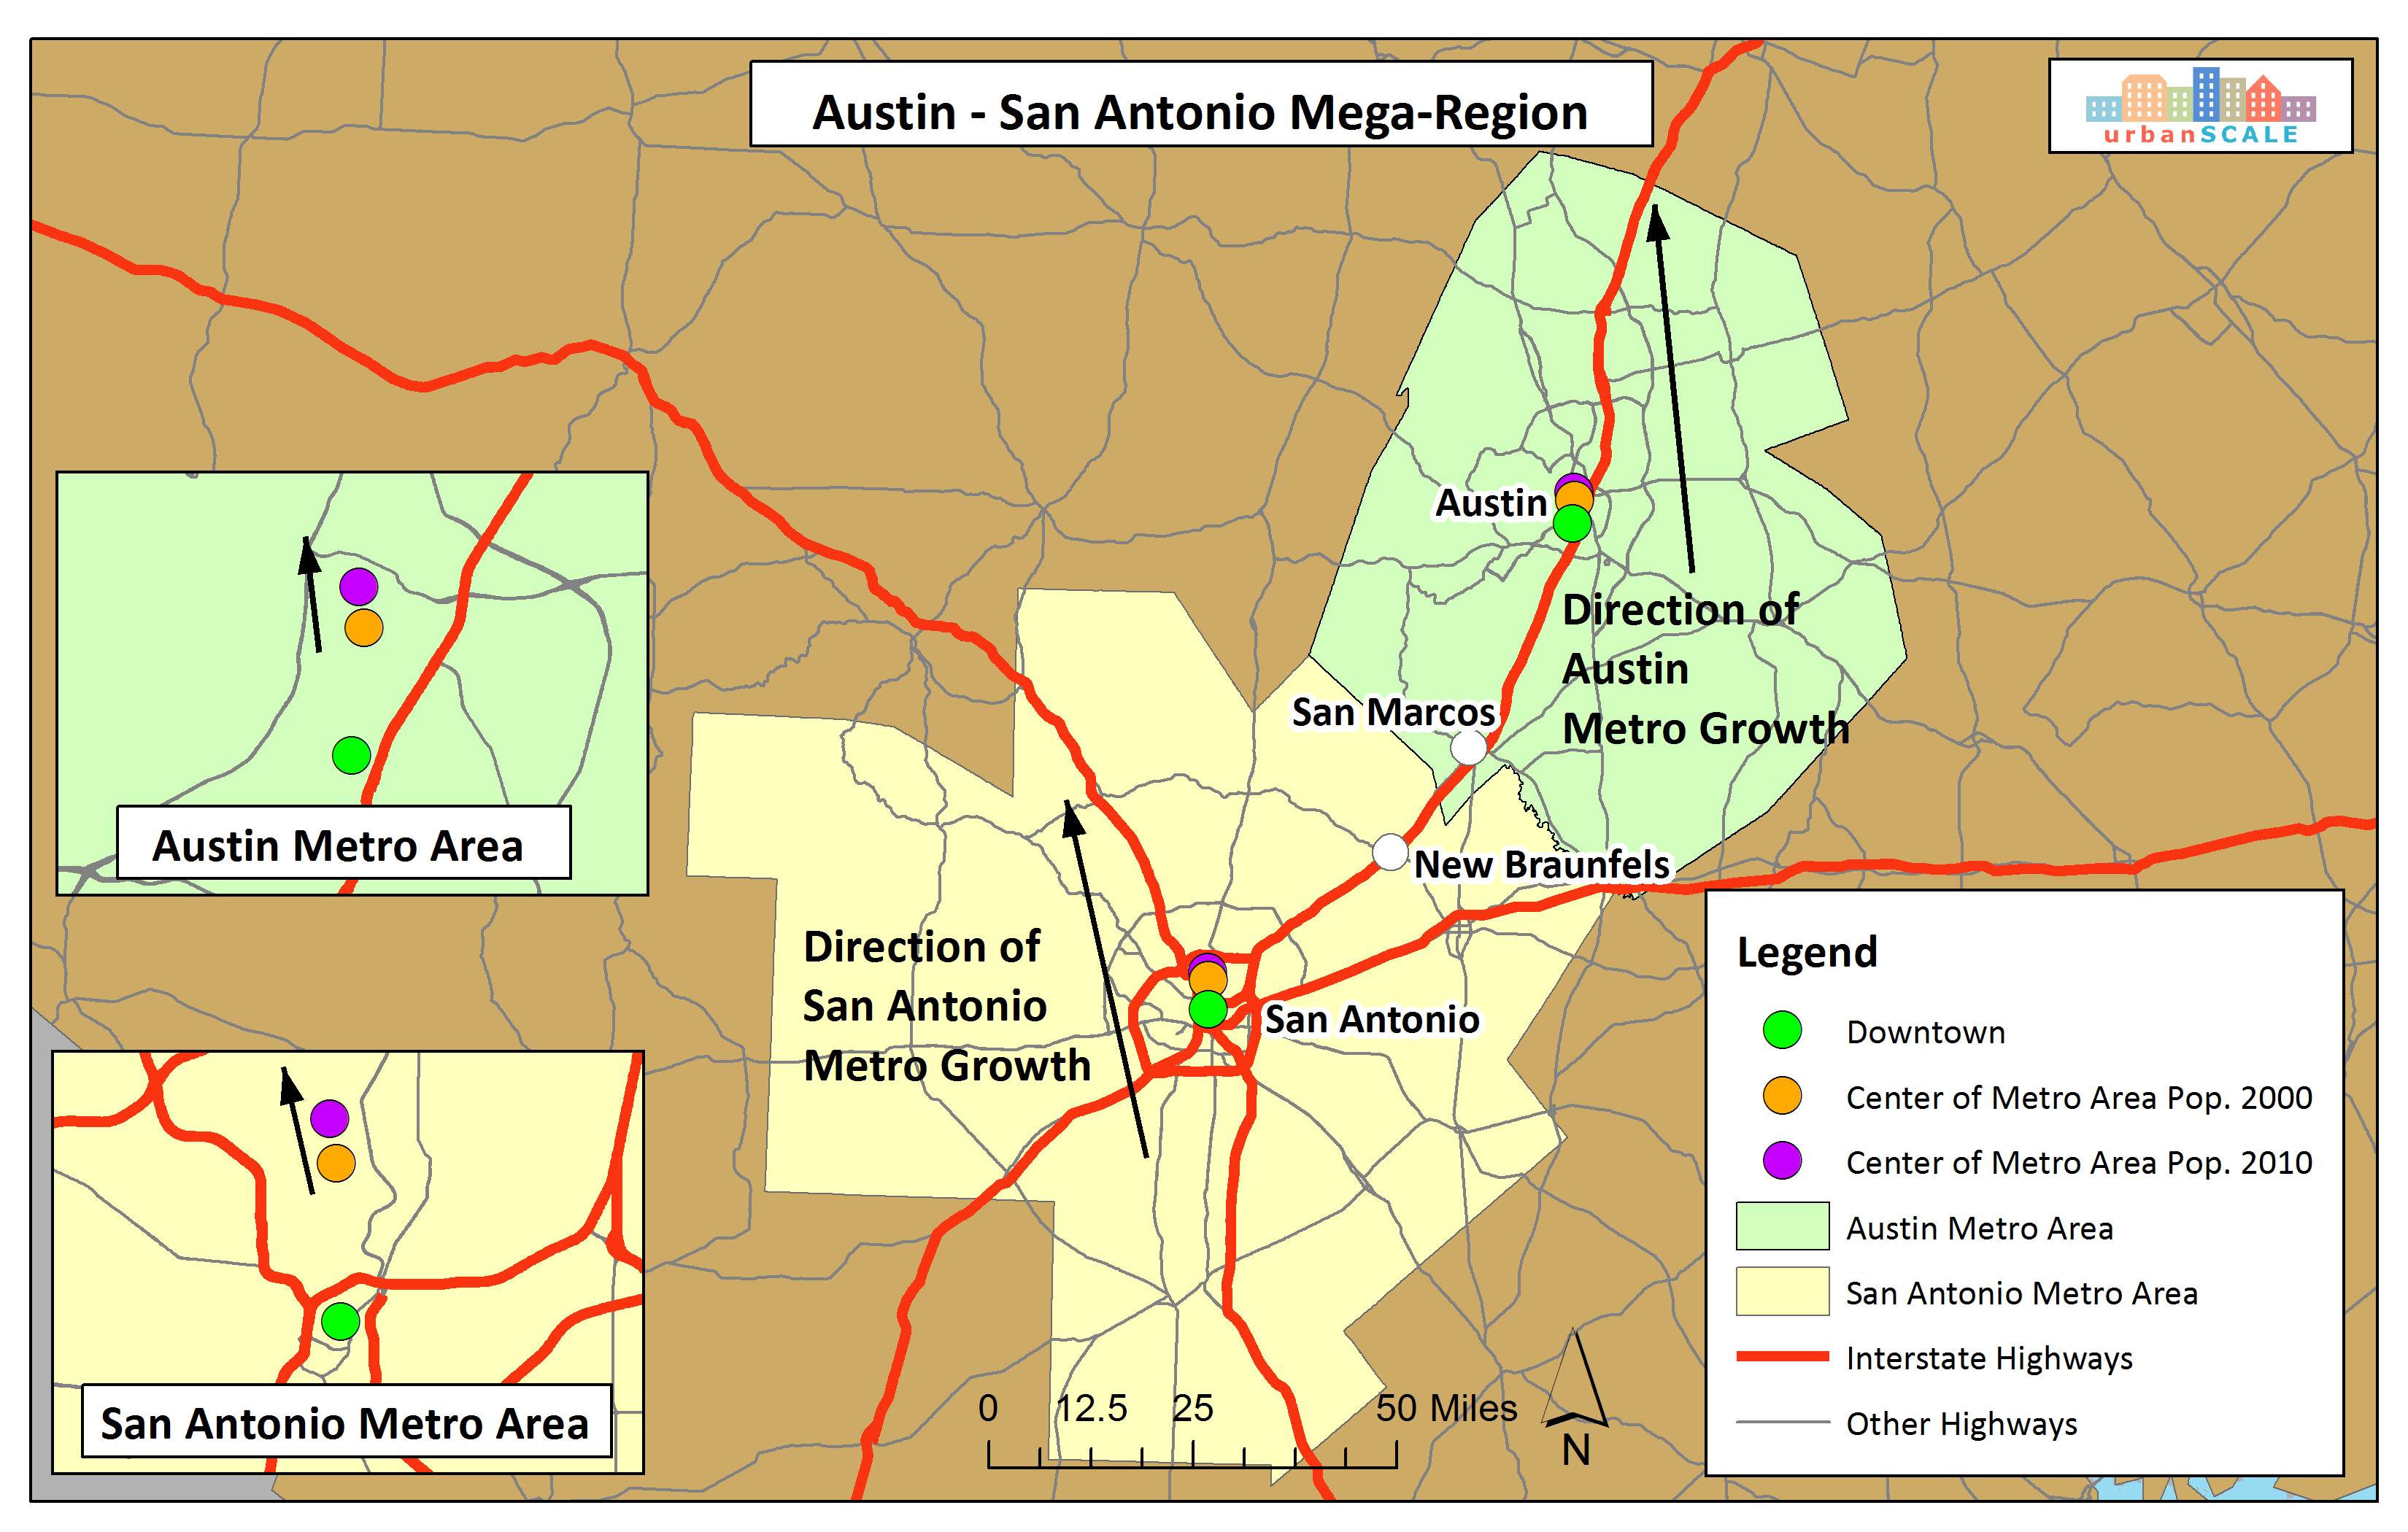 map austin san antonio – bnhspine.com on